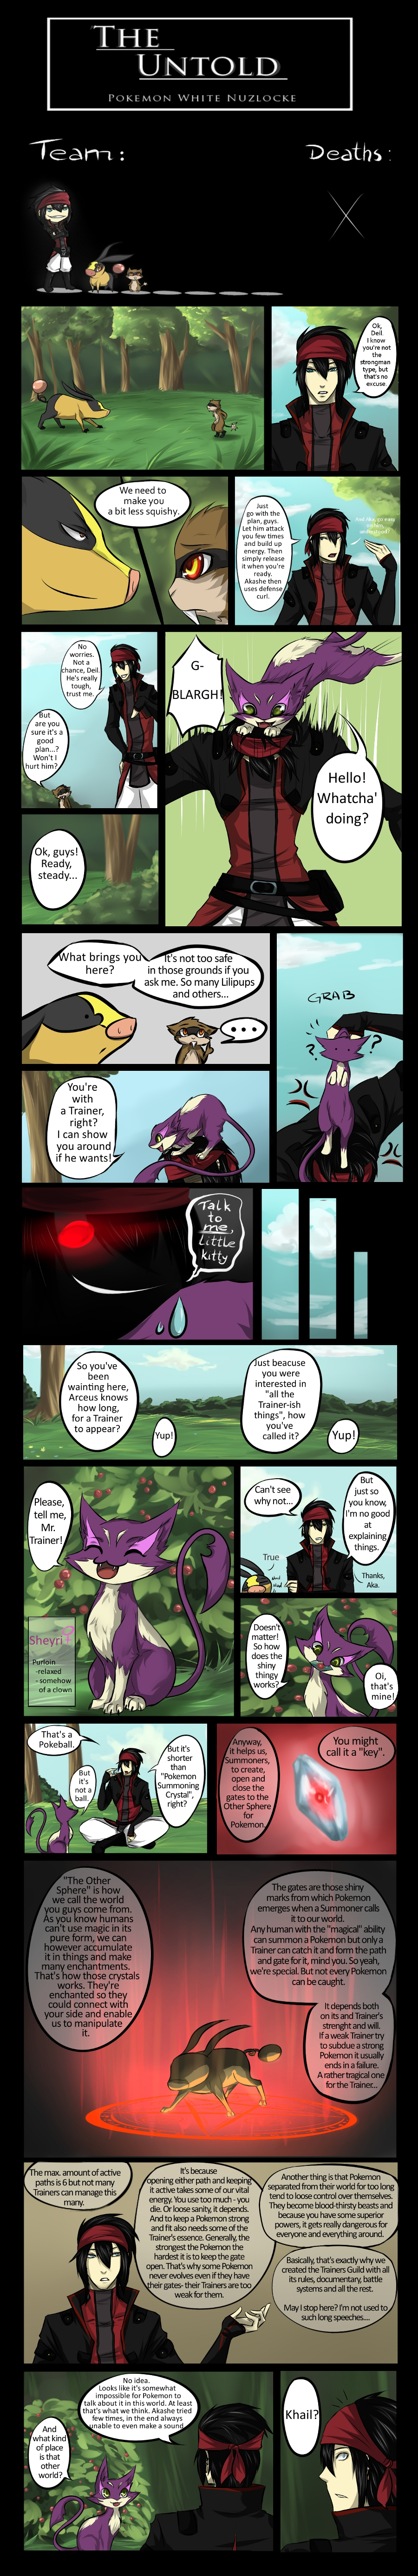 The Untold - part 4 by Antarija